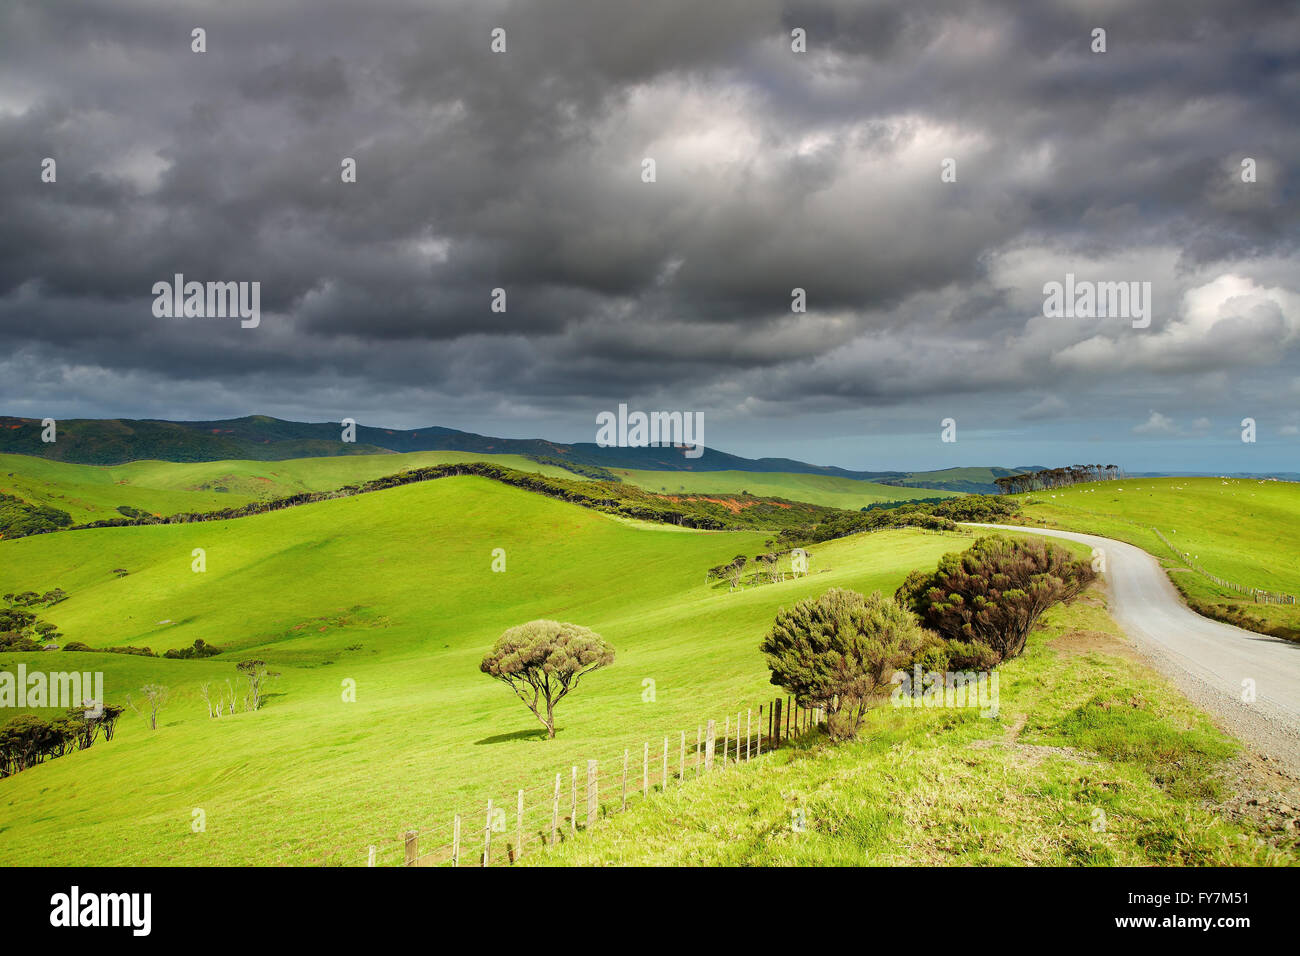 Landscape with green hills an storm clouds - Stock Image